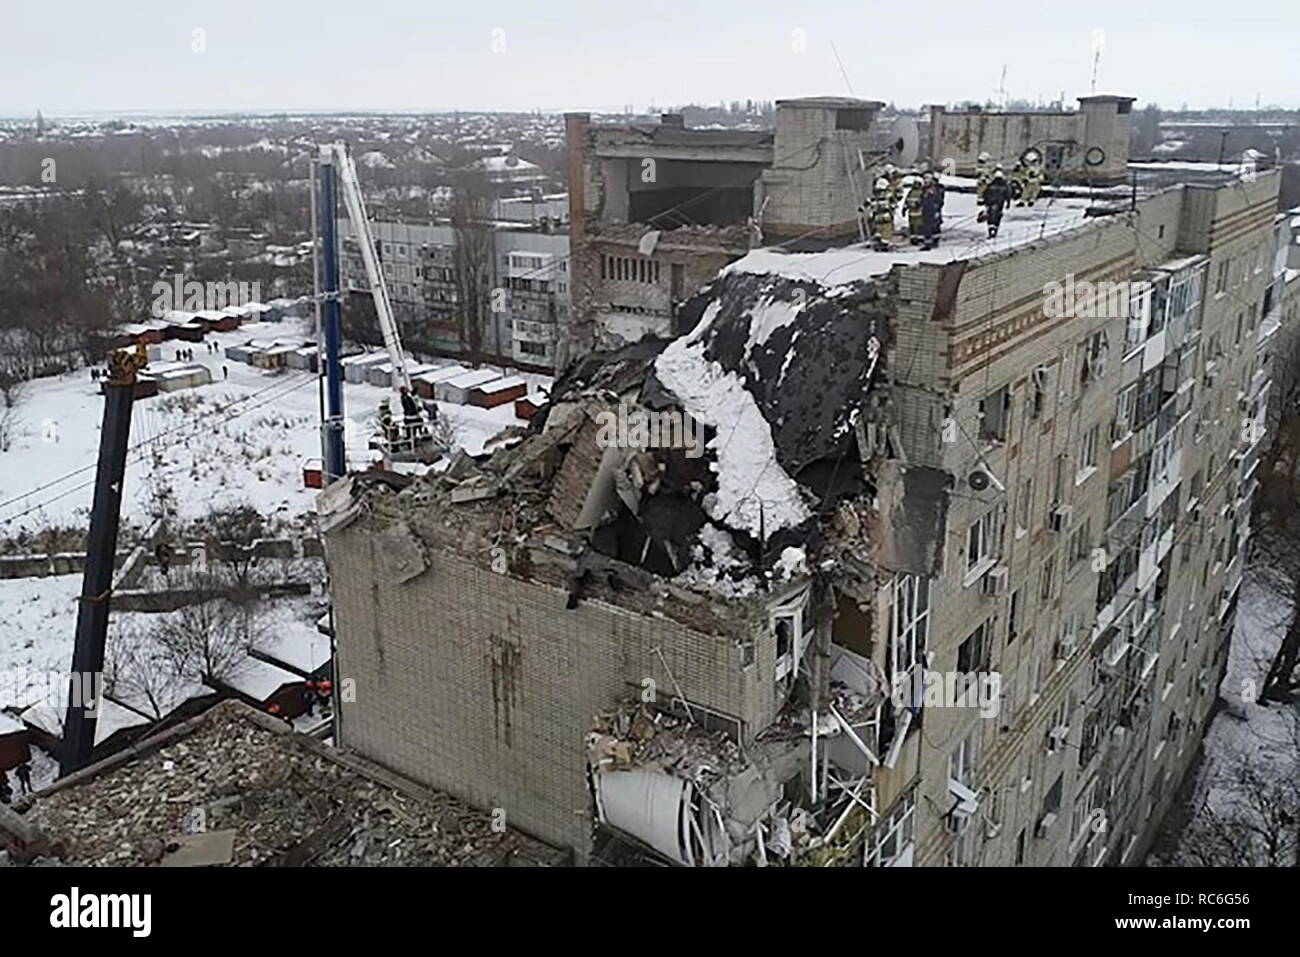 Shakhty, Russia. 14th Jan, 2019. ROSTOV-ON-DON REGION, RUSSIA - JANUARY 14, 2019: An aerial view of the site of a domestic gas explosion which has caused a partial collapse of an apartment building at 16 Khabarova Street in the town of Shakhty. Video screen grab/Russian Emergency Situations Ministry press office/TASS Credit: ITAR-TASS News Agency/Alamy Live News - Stock Image